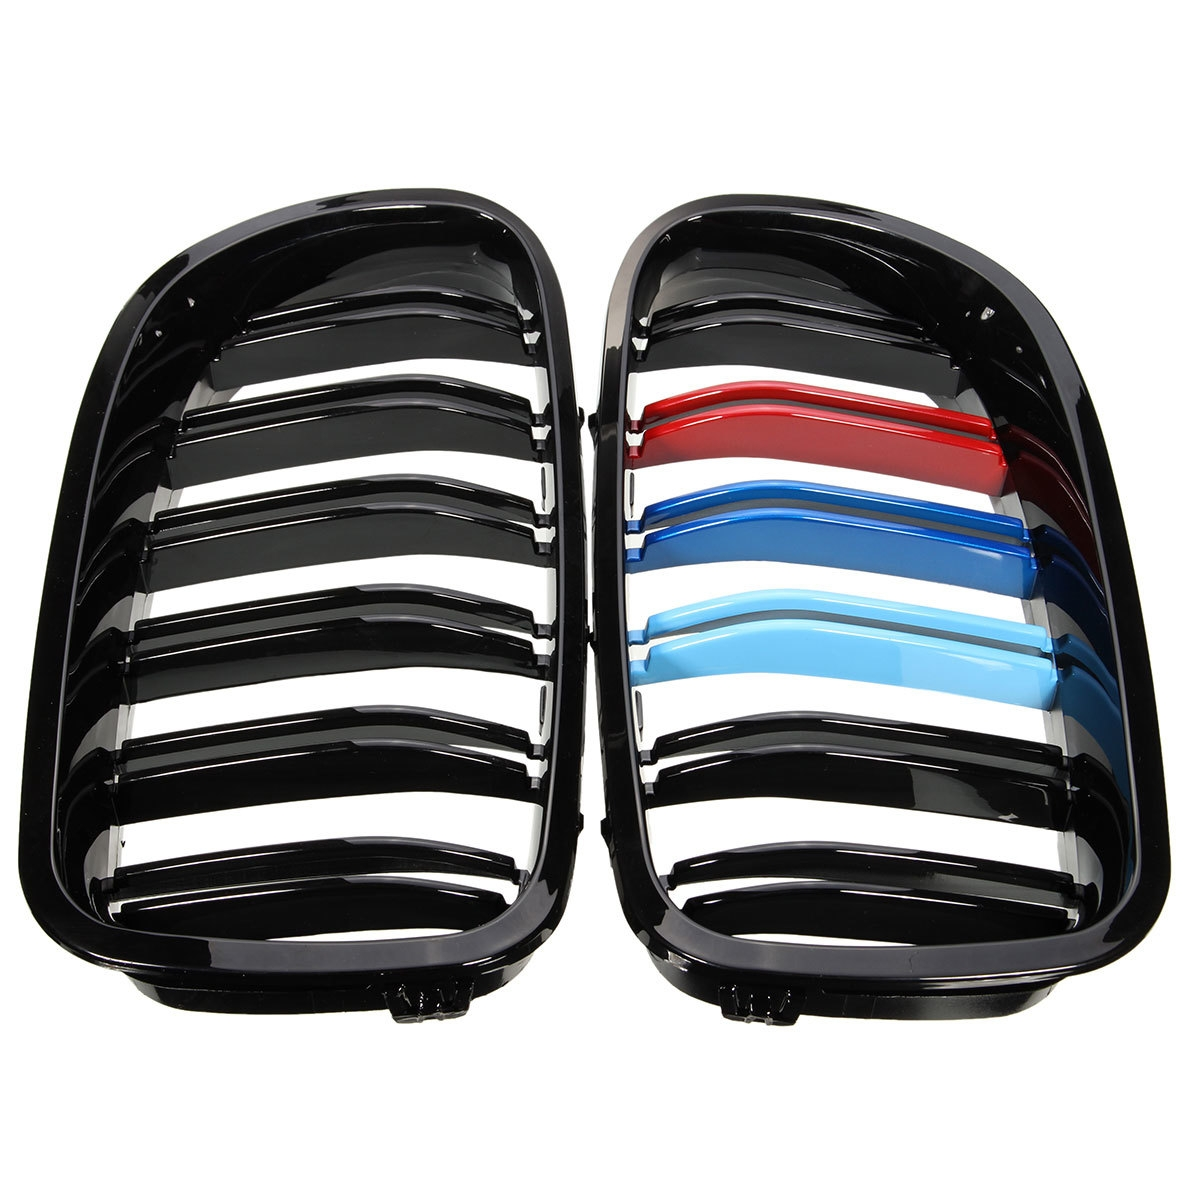 Generic New Shiny Black Front Sport Kidney Grill Grille For